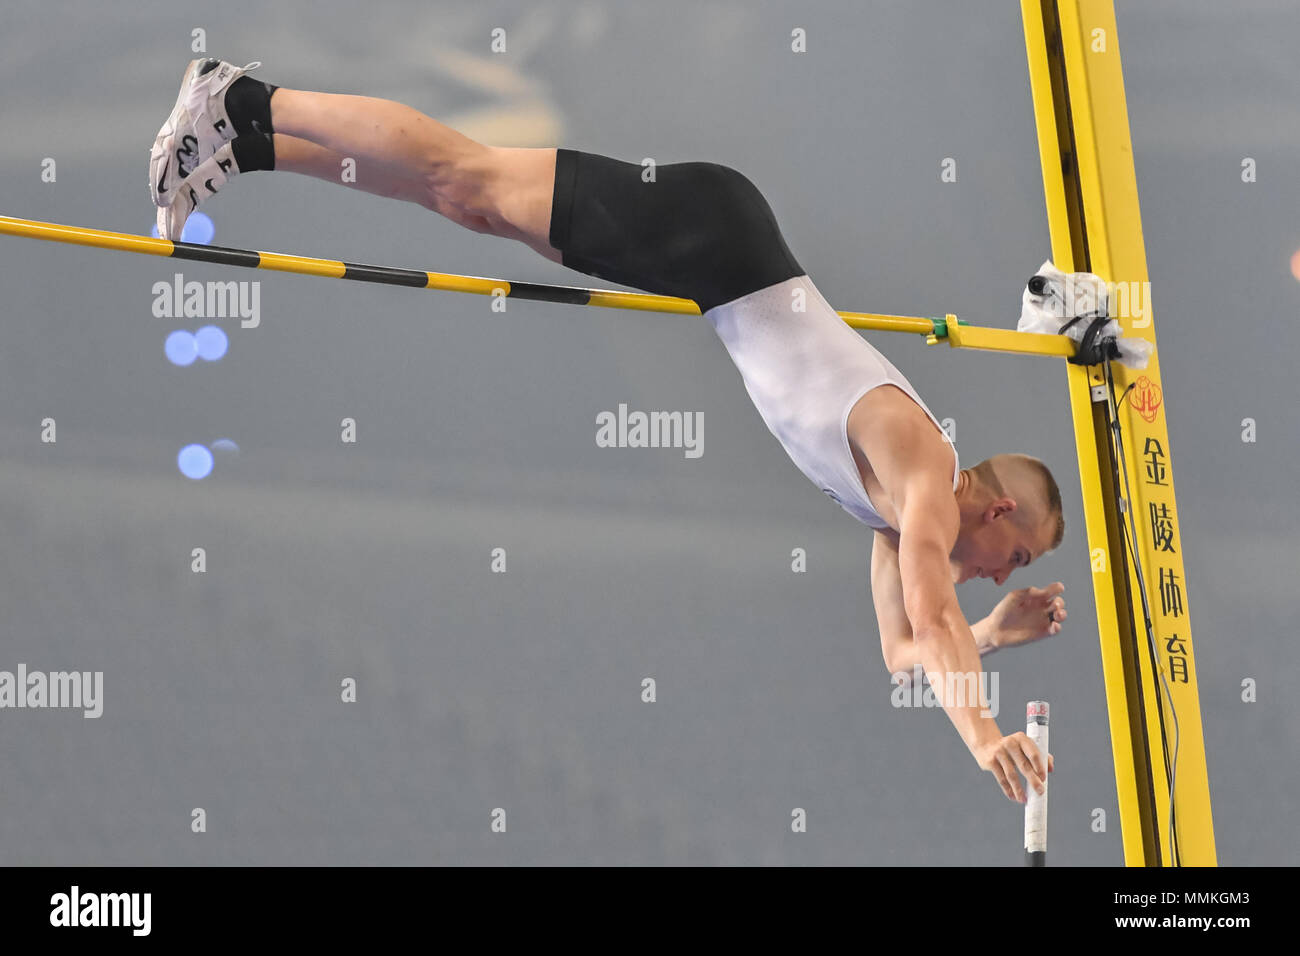 Shanghai, China. 12th May 2018. Sam Kendricks (USA) in aceton during 2018 IAAF Shanghai Diamond League: MEN'S POLE VAULT at Shanghai Stadium on Saturday, 12 May 2018. SHANGHAI, CHINA. Credit: Taka G Wu Credit: Taka Wu/Alamy Live News - Stock Image